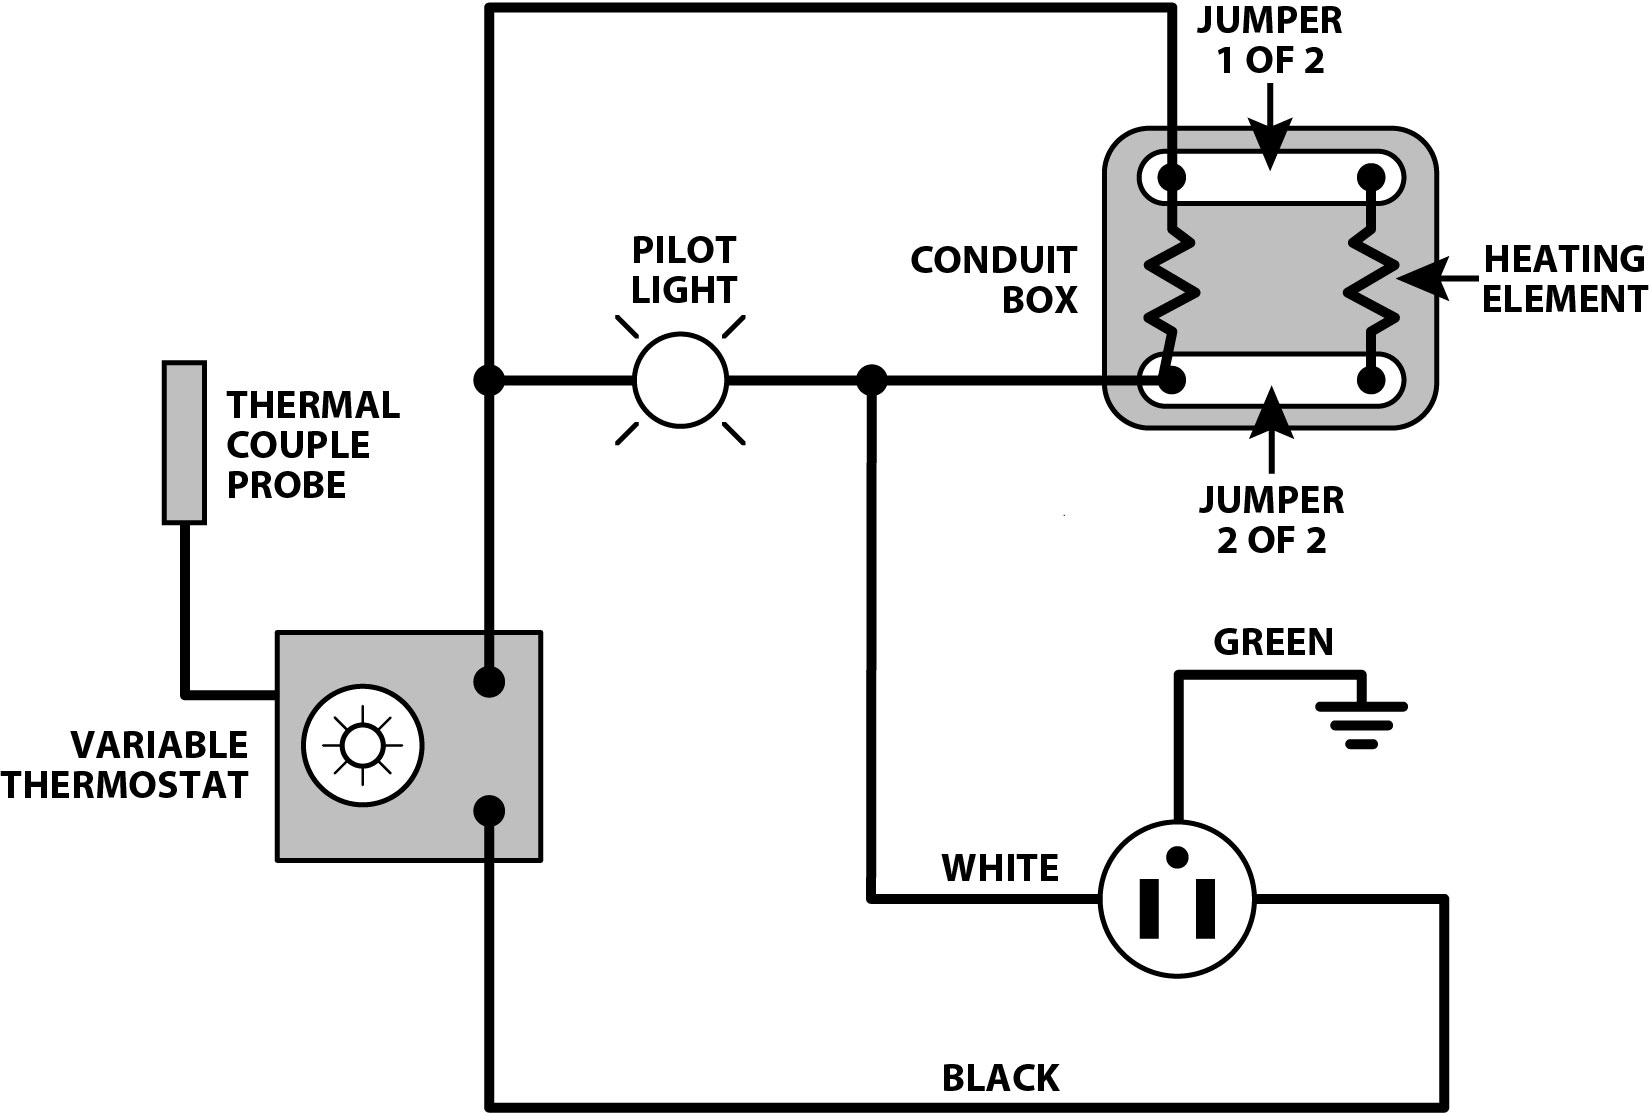 7pajz Hey Mike Long Time in addition Switched Outlet Wiring 144515 as well 59lyi Removed Worn Motor Pool Pump I M Not Sure further Watt Inverter V Dc To V Ac Schematic Diagram likewise Wiring Diagram For A 220 Volt Pool Pump. on 120v electrical switch light wiring diagrams